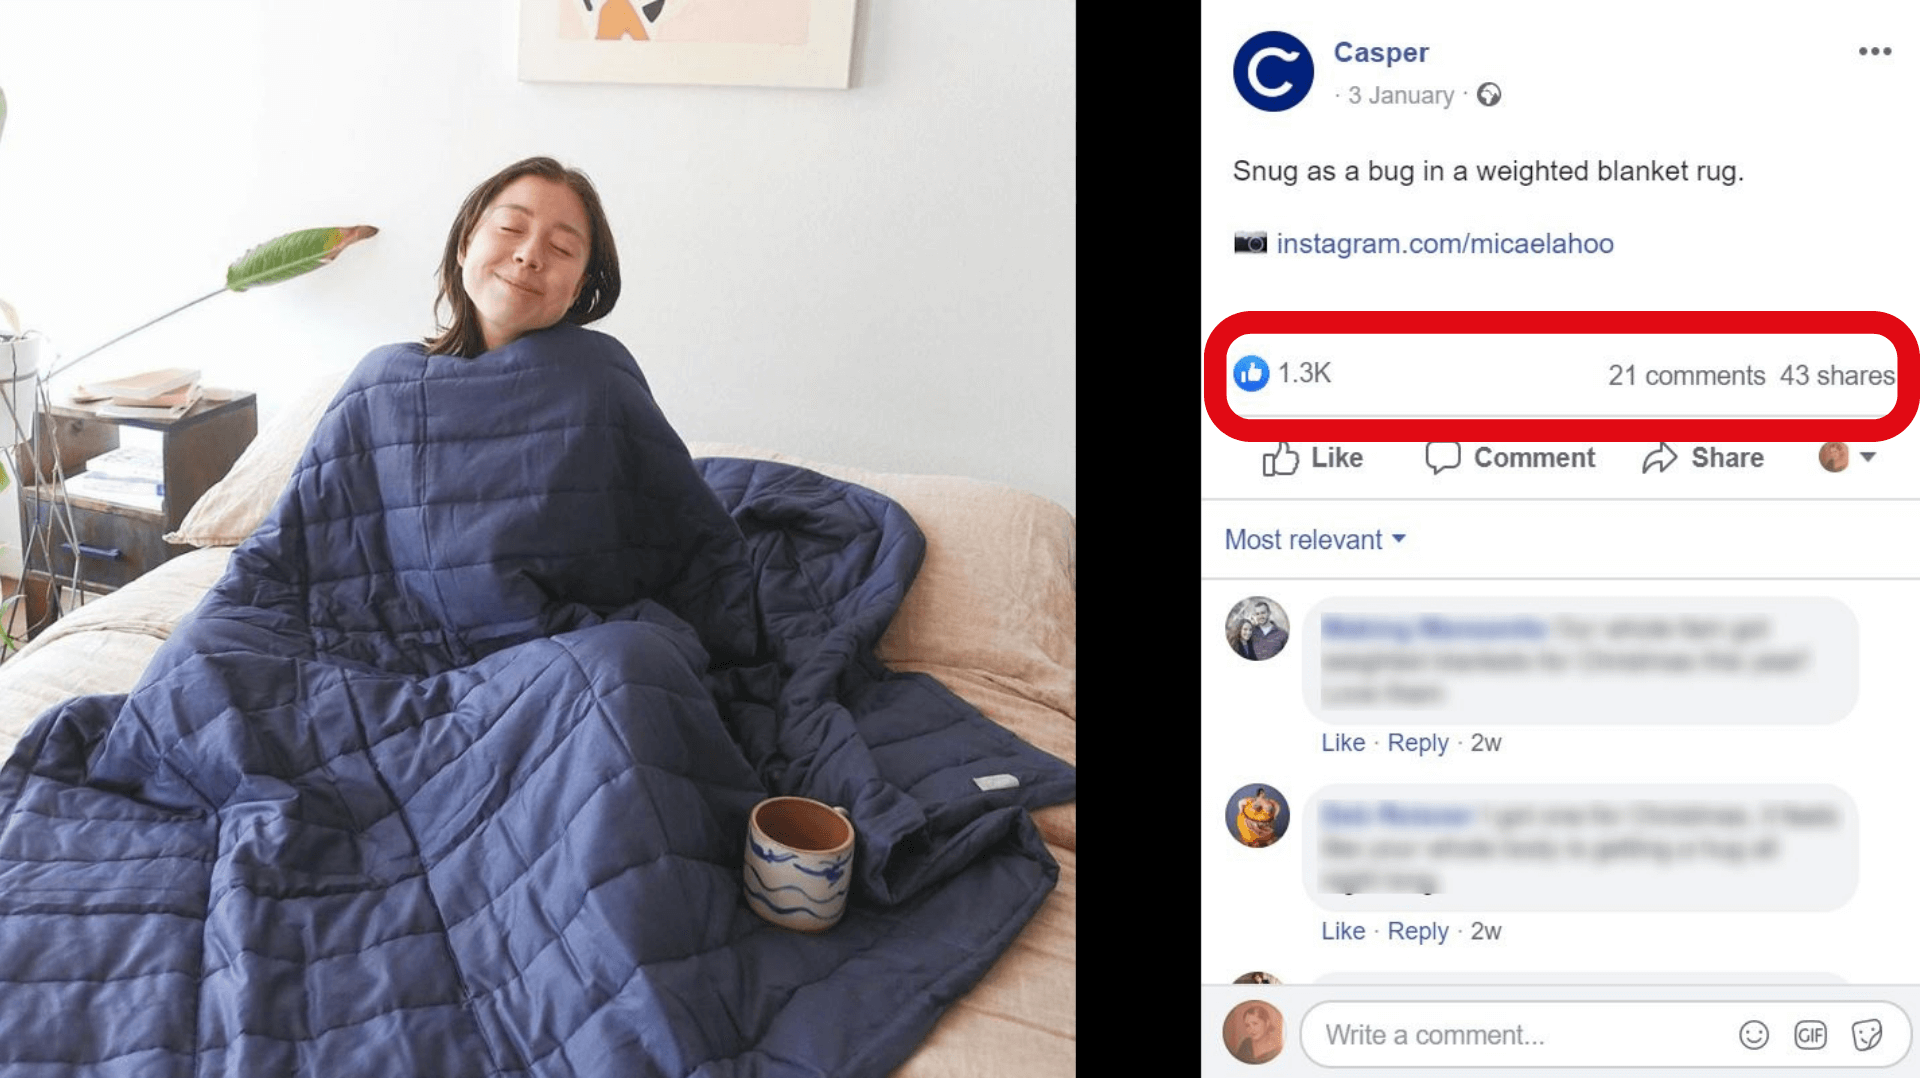 User generated content on Facebook